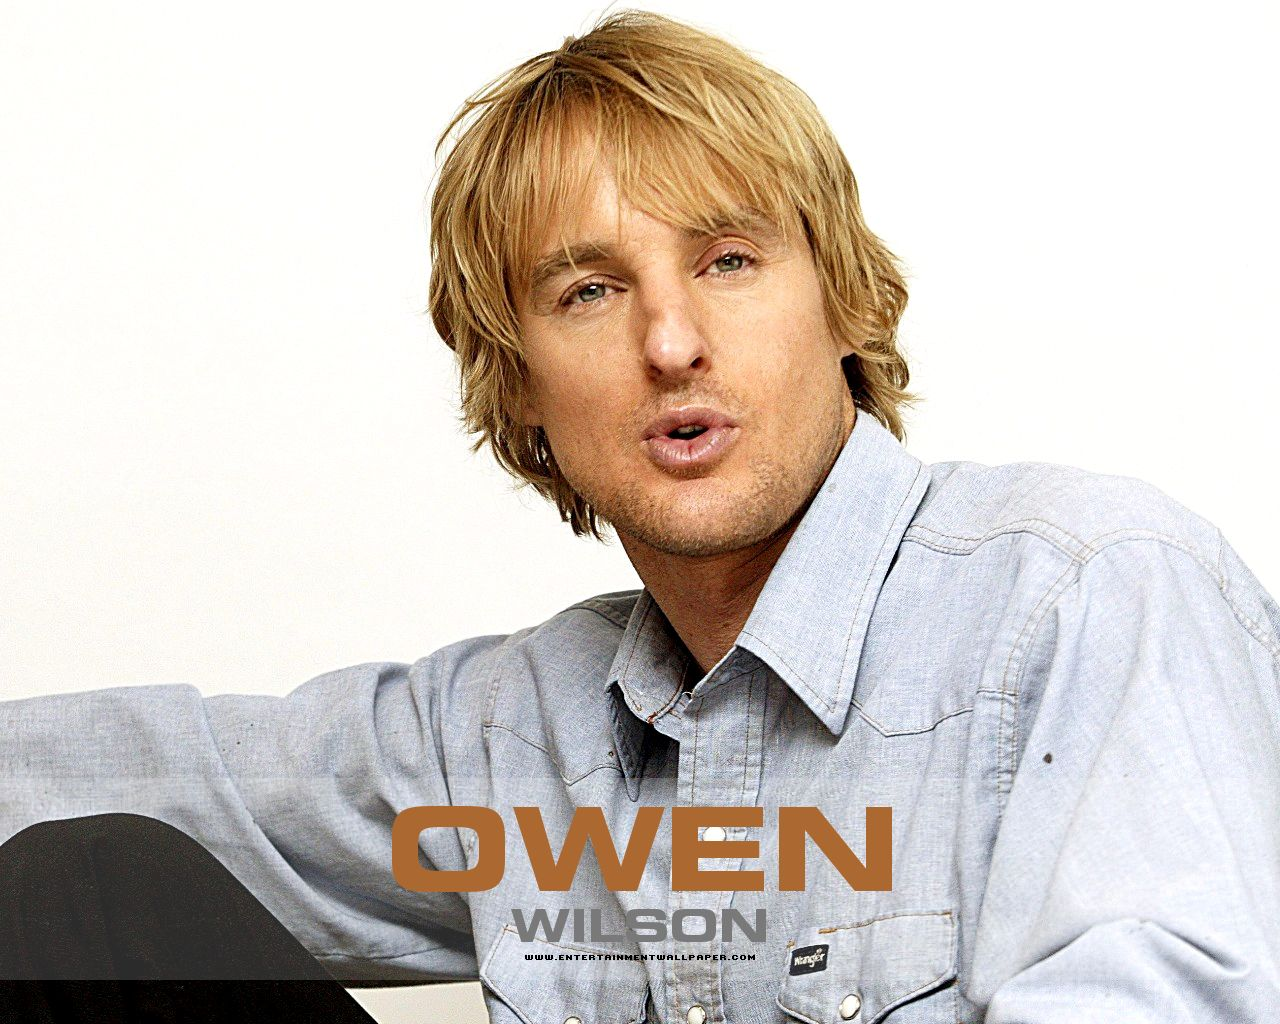 Owen Wilson Wallpapers and Background Images   stmednet 1280x1024